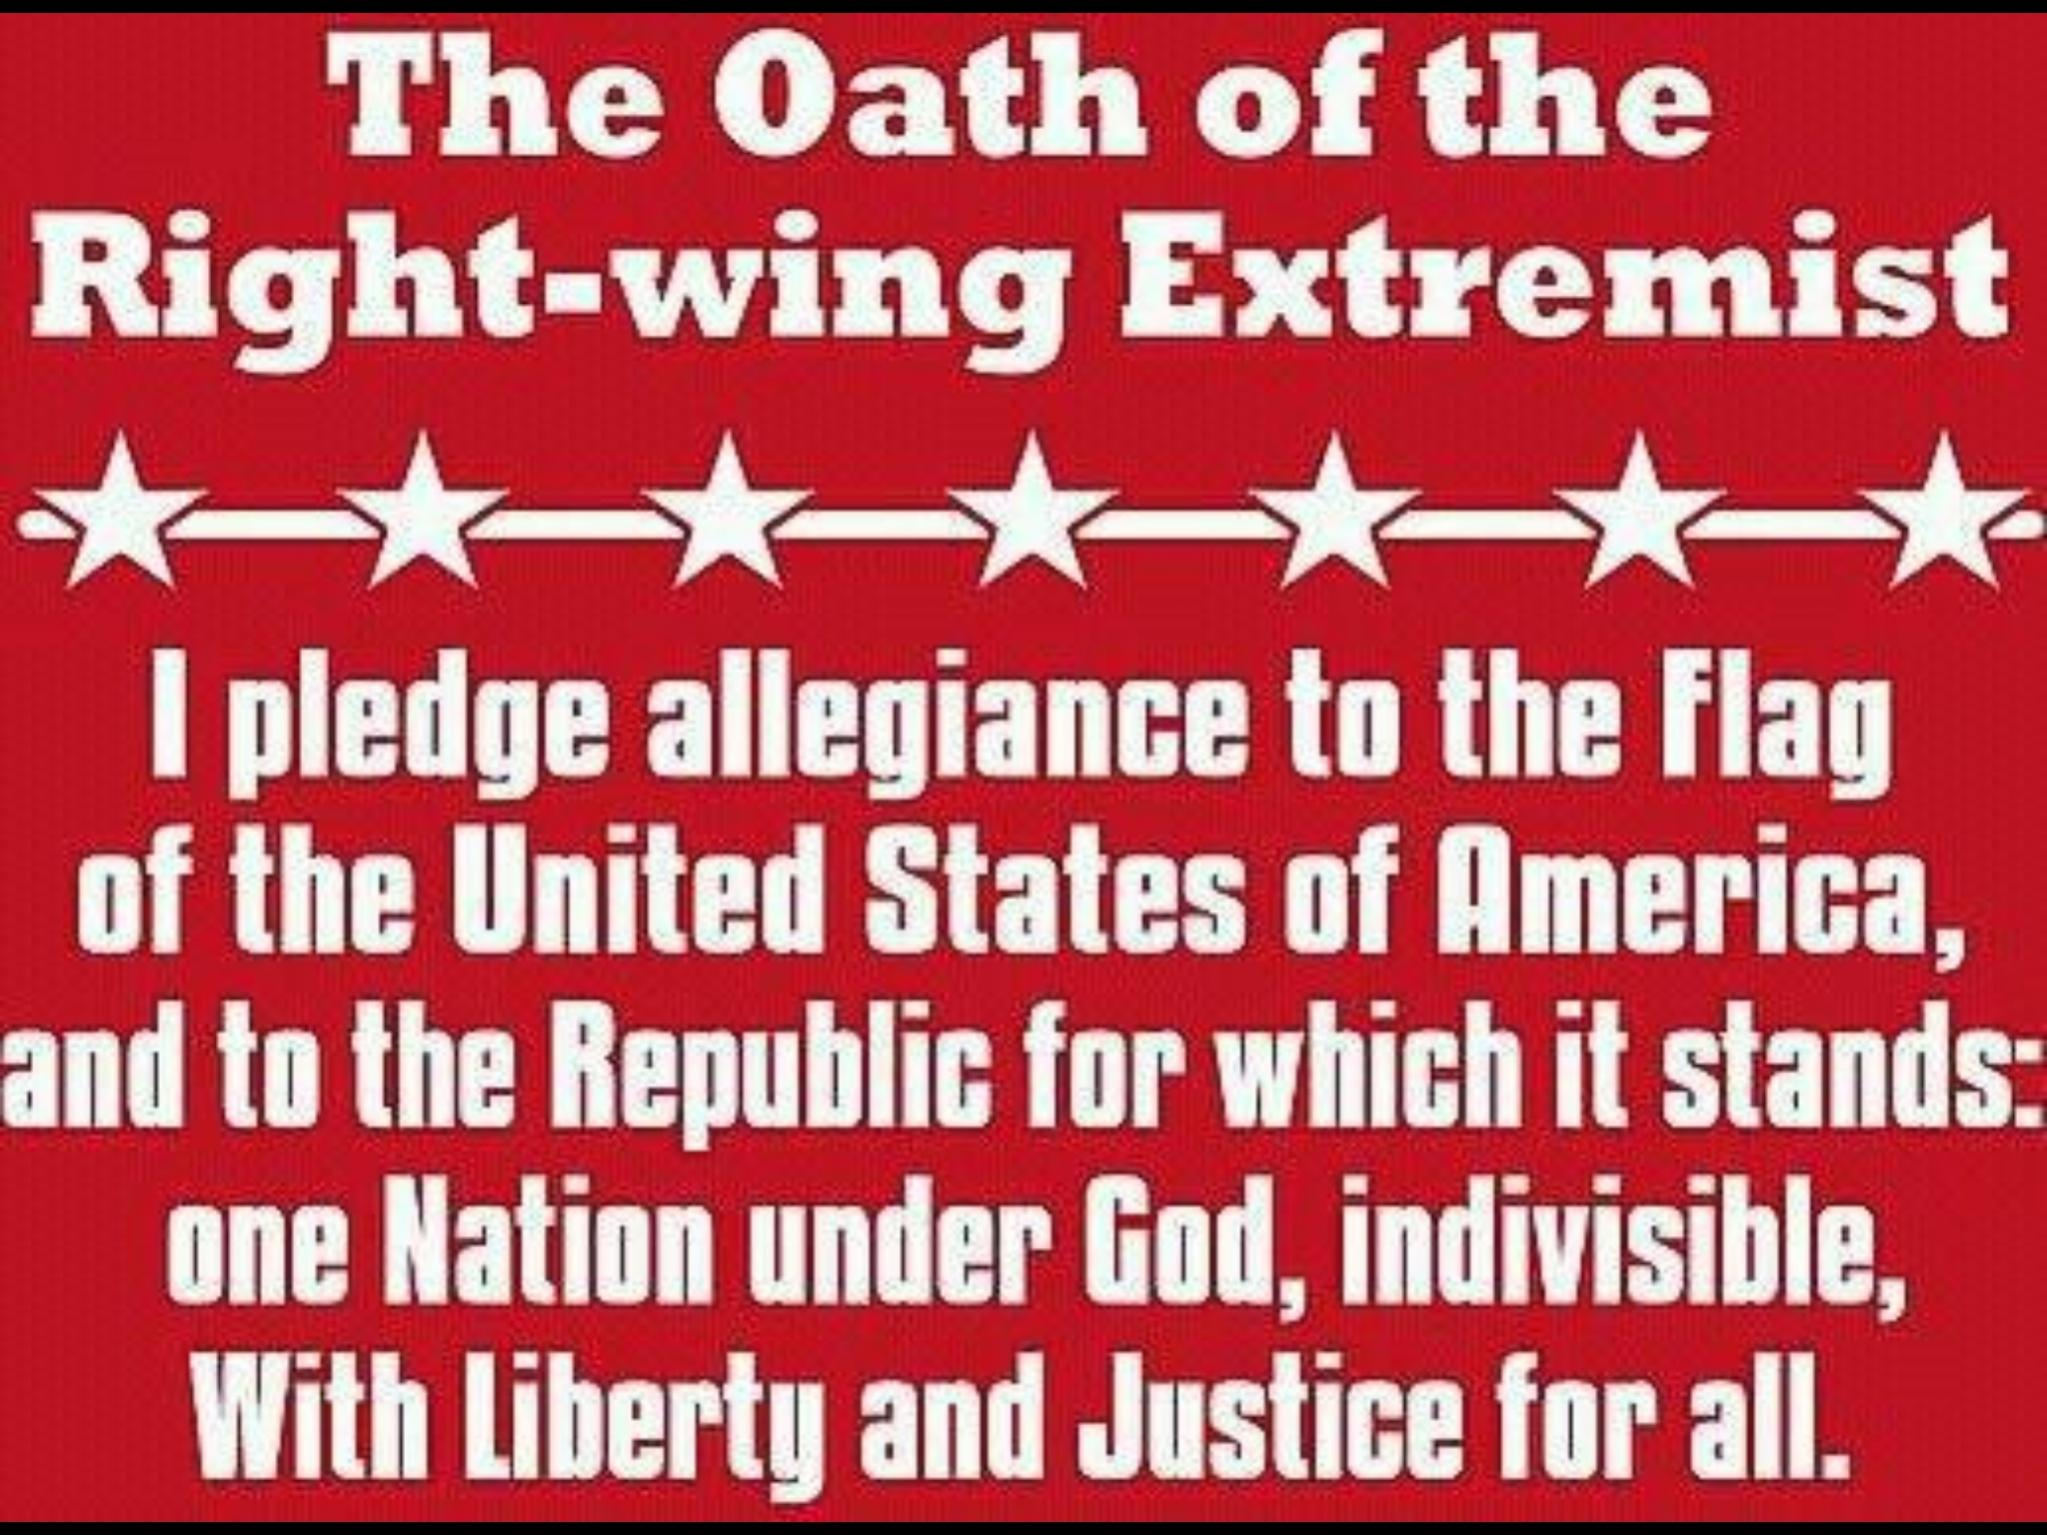 The Oath of the Right Wing Extremist-image.jpg